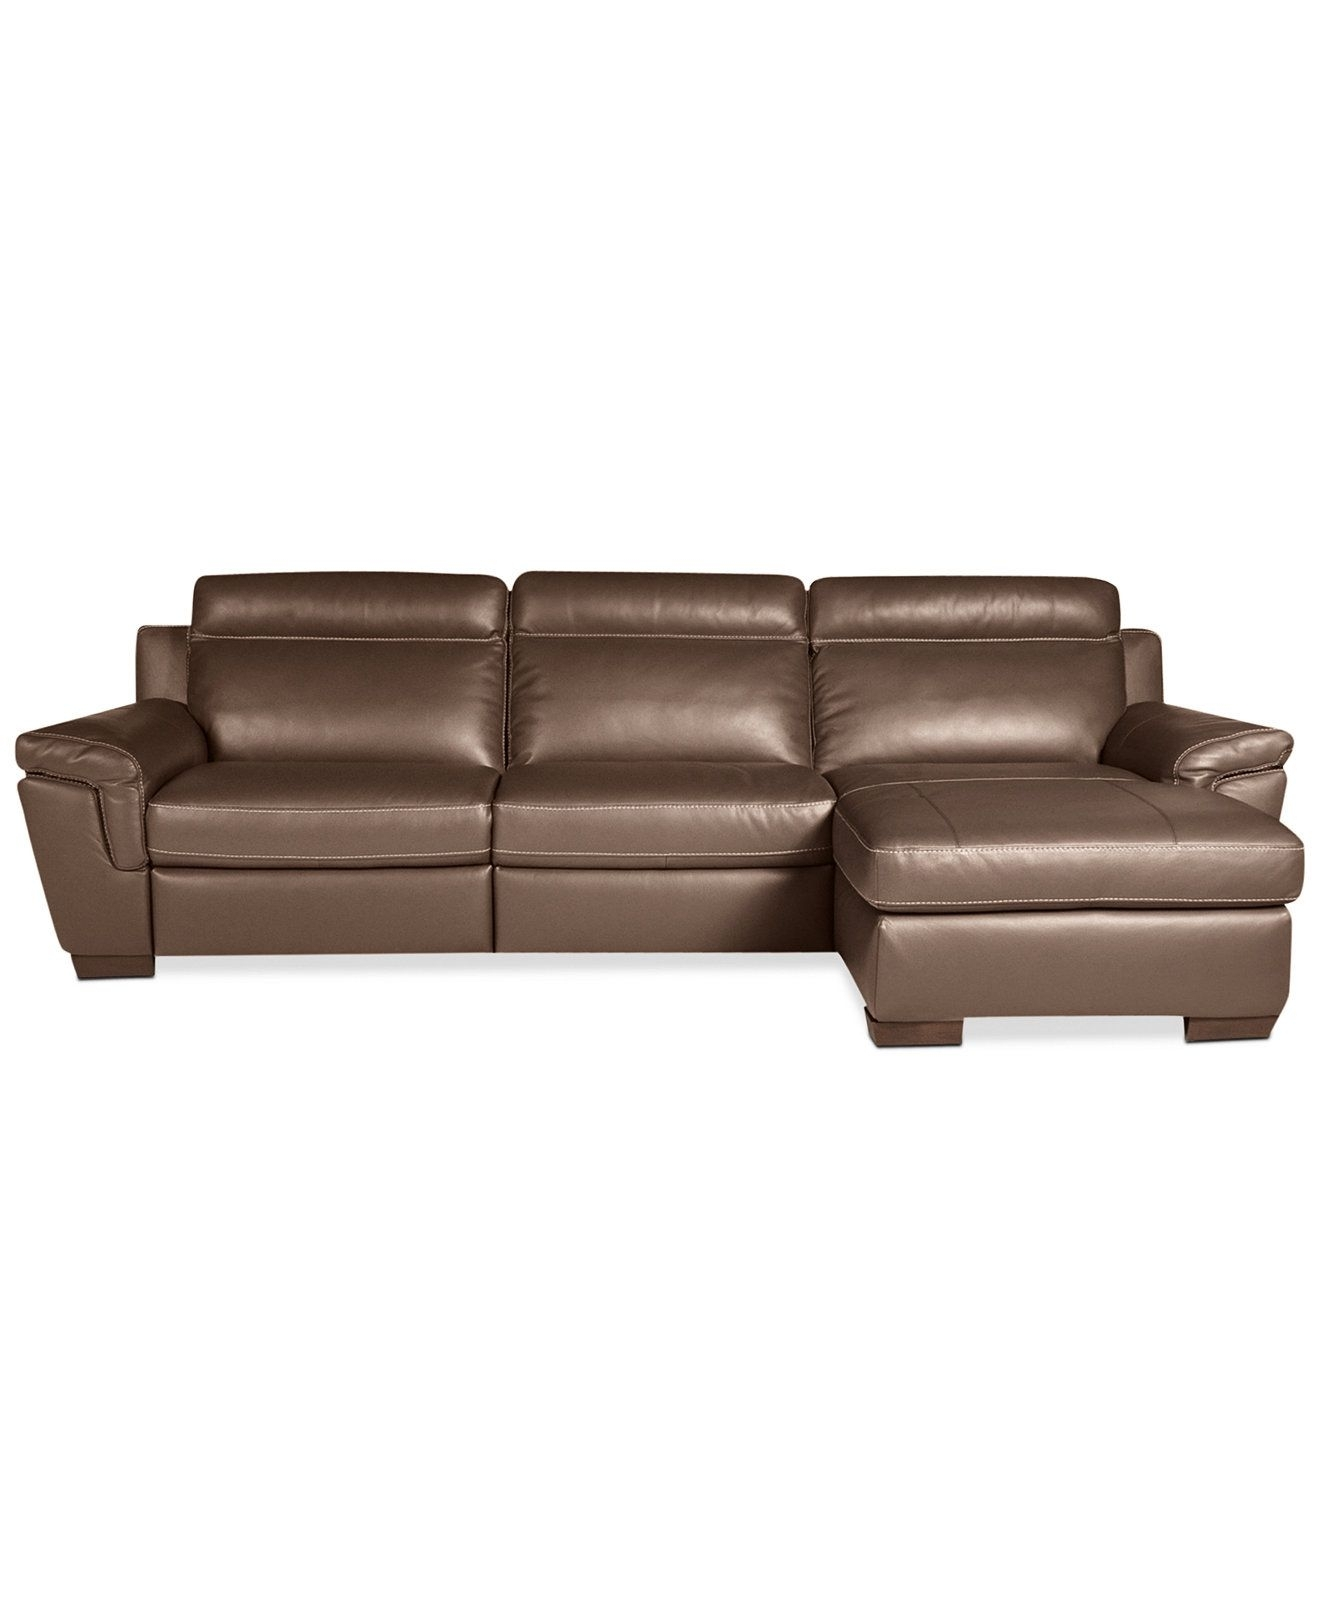 Julius 3 Piece Leather Power Motion Chaise Sectional Sofa (Power Regarding Declan 3 Piece Power Reclining Sectionals With Right Facing Console Loveseat (Photo 6 of 25)